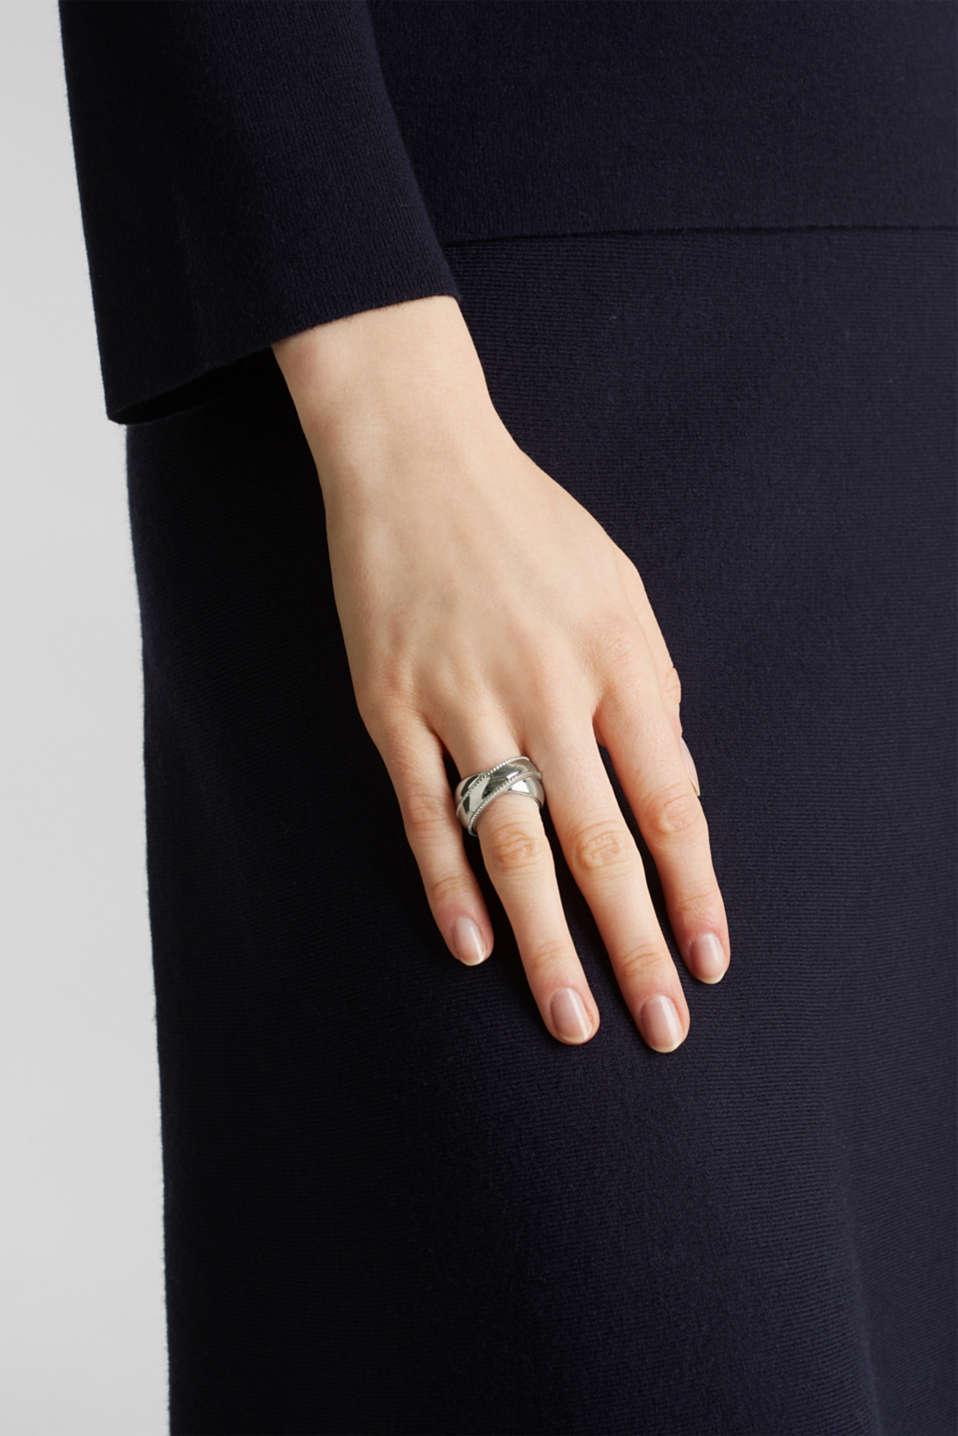 Stainless steel statement ring, LCSILVER, detail image number 2